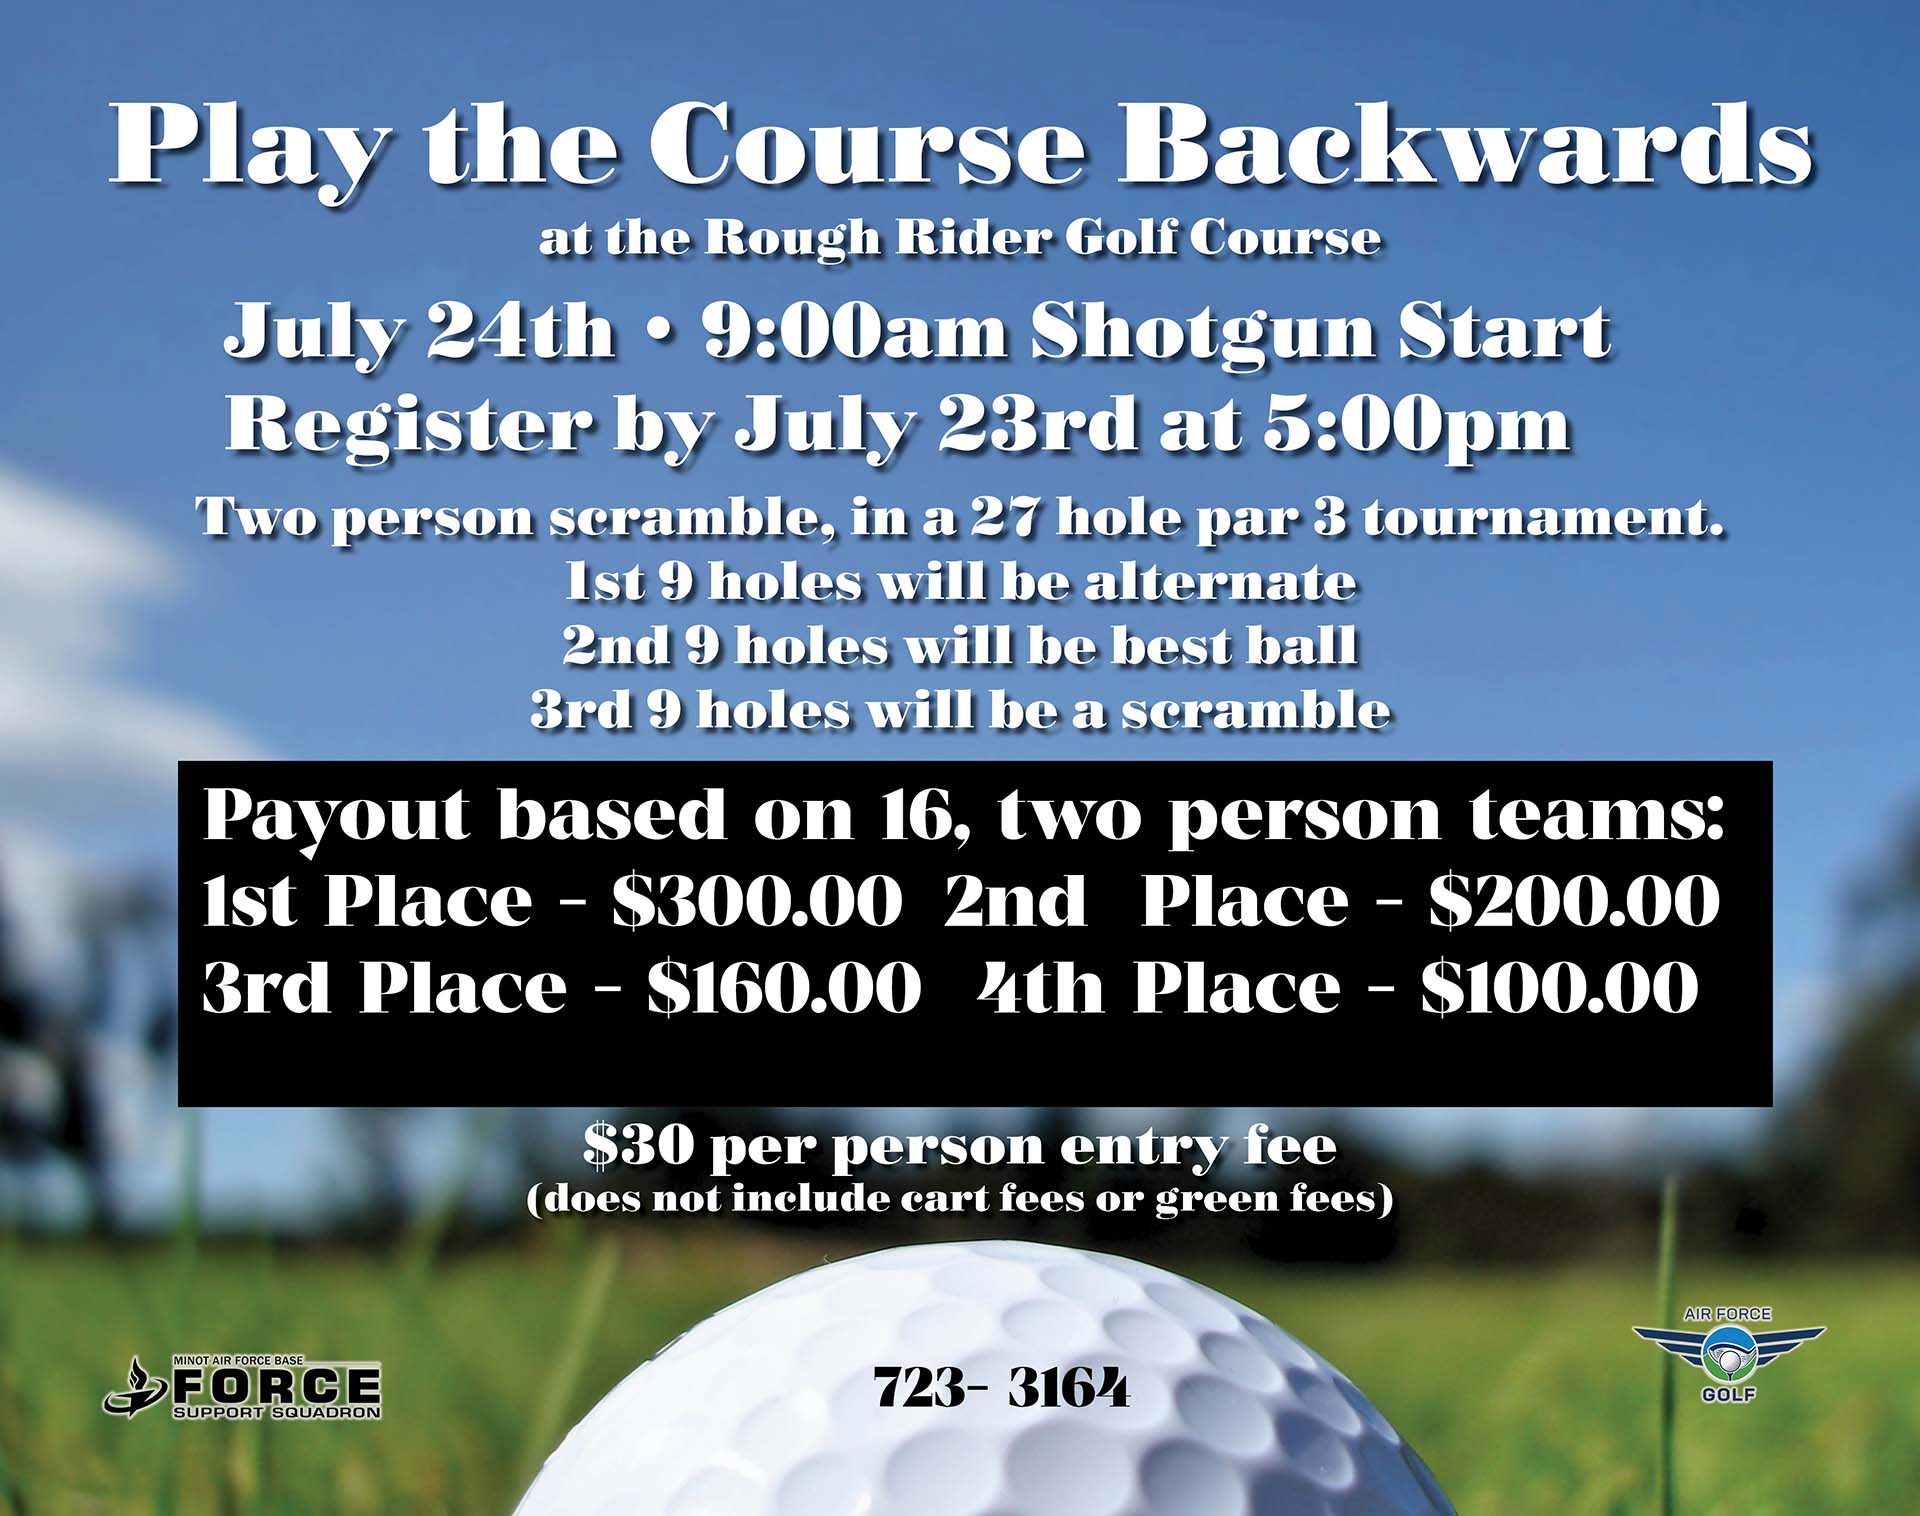 Registration Ends: Play the Course Backwards